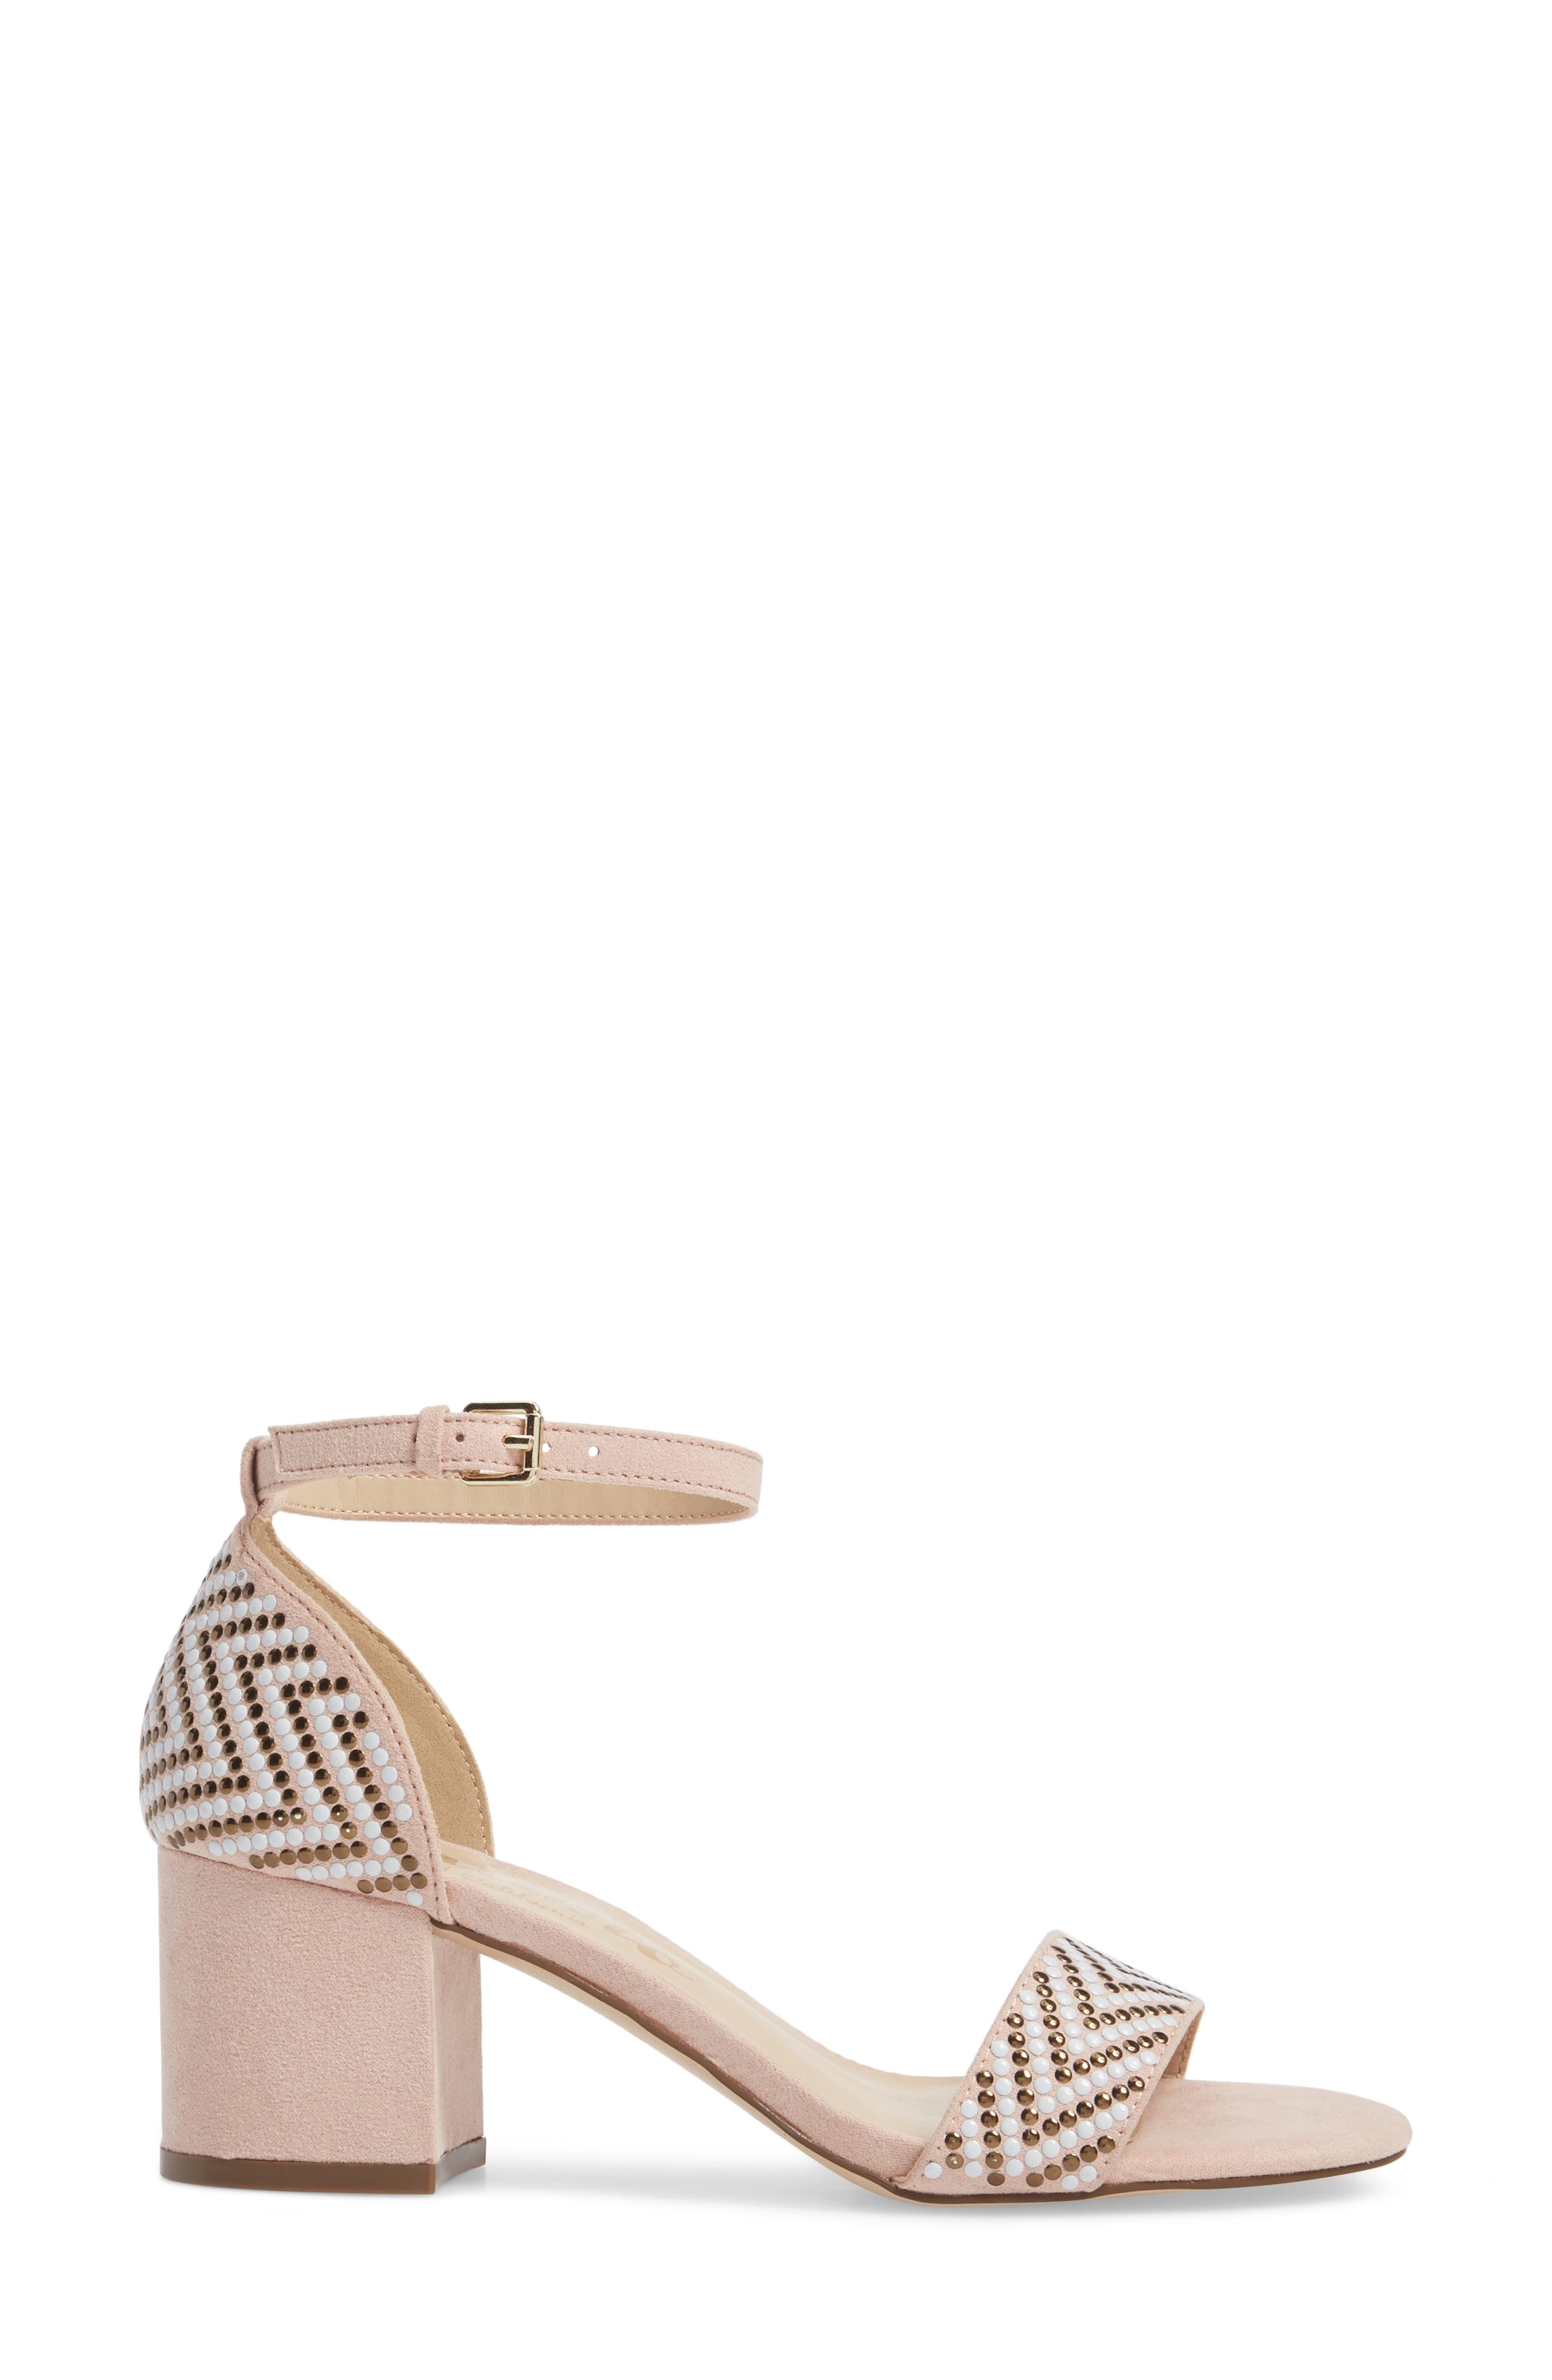 Alternate Image 3  - Callisto Mercer Ankle Strap Sandal (Women)